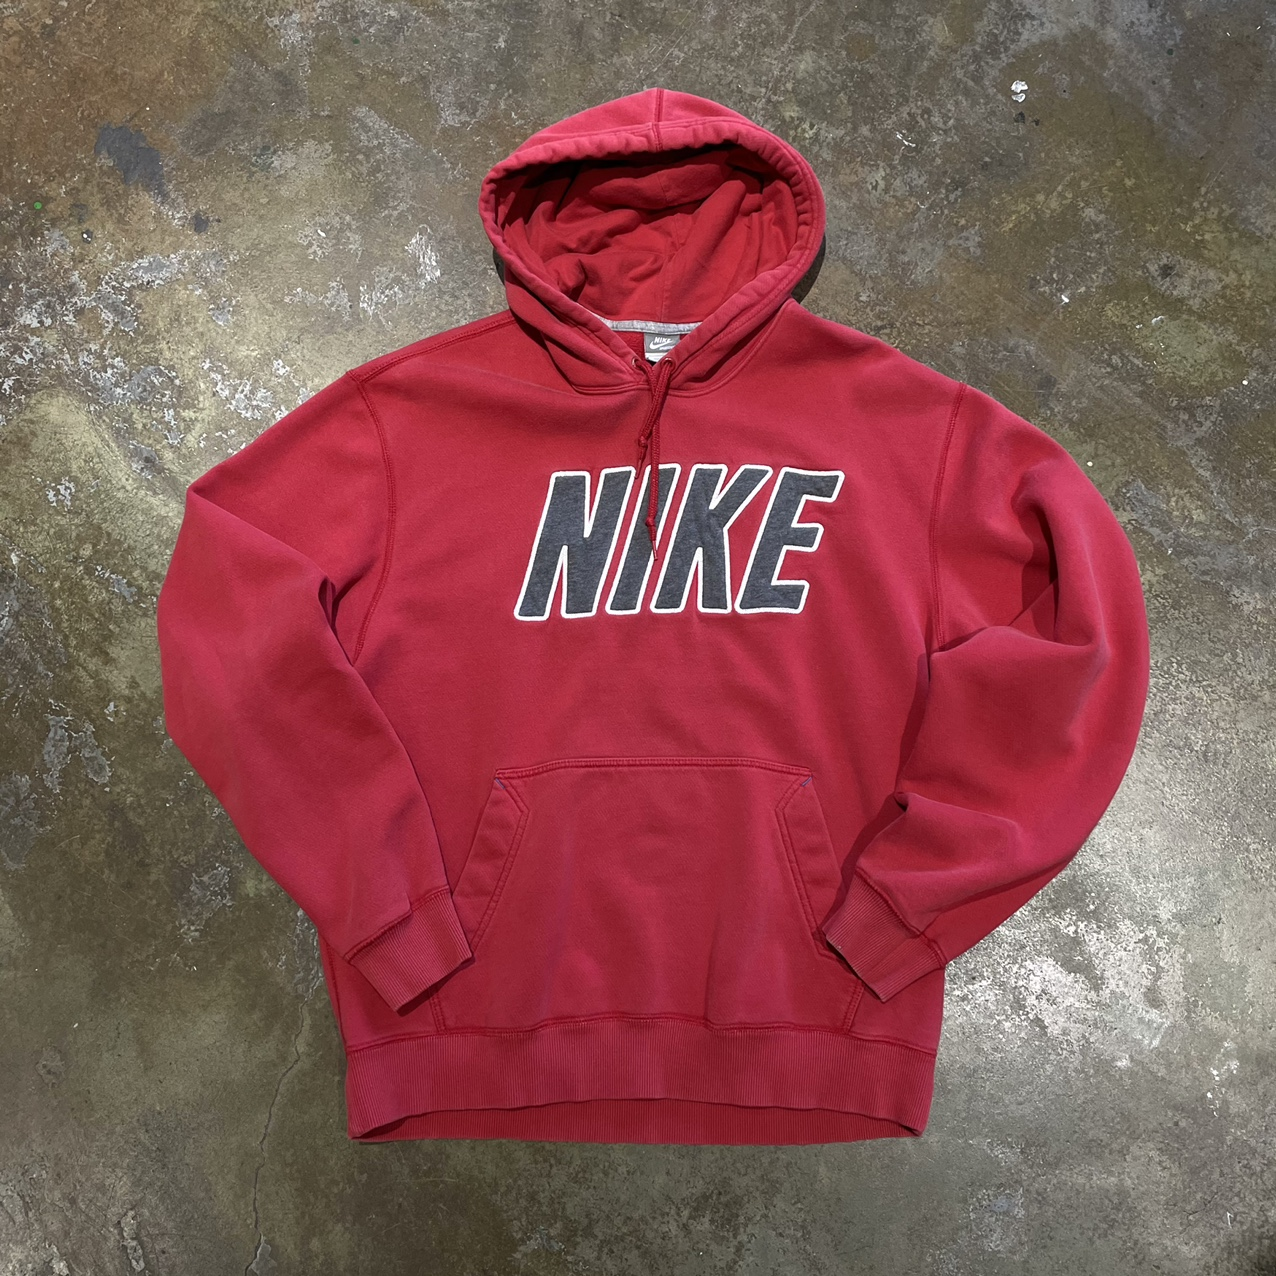 Product Image 1 - 00s Nike Hoodie 25x29 Good condition.